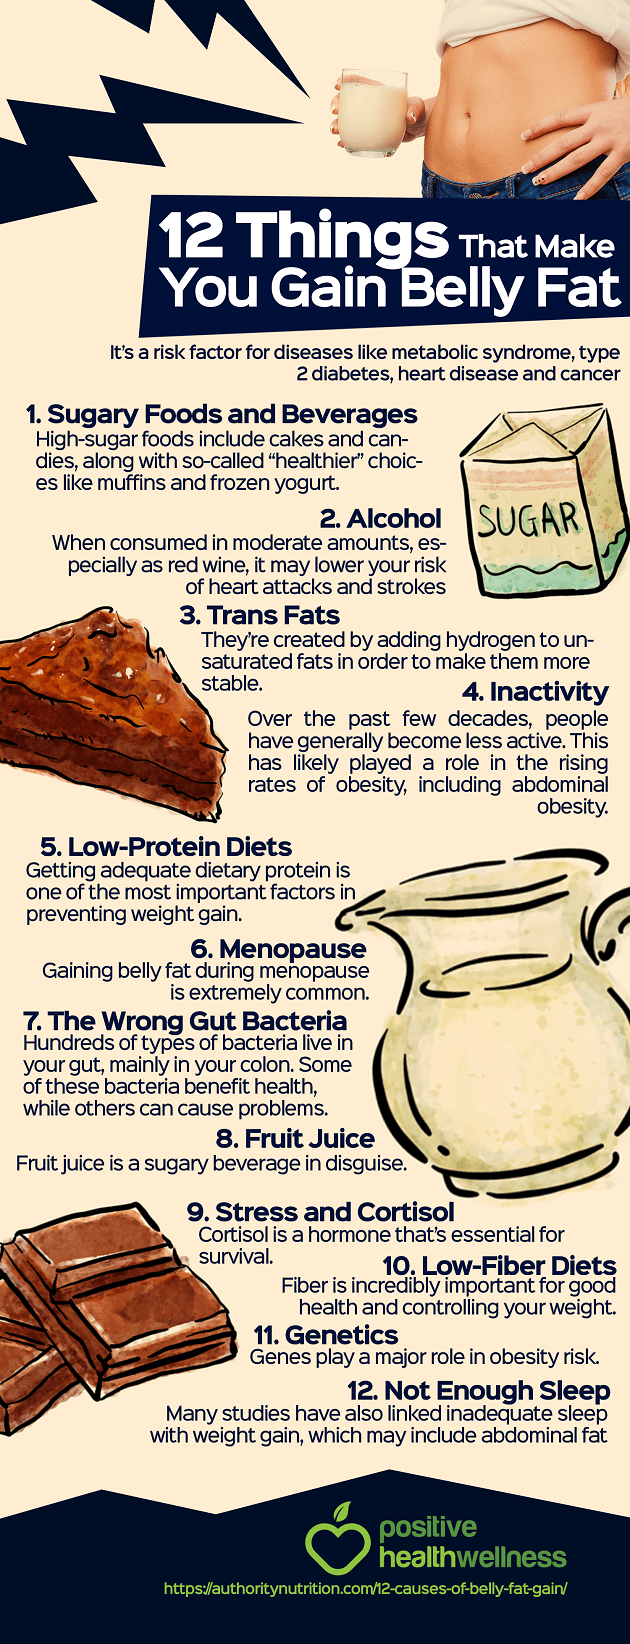 12 Things That Make You Gain Belly Fat